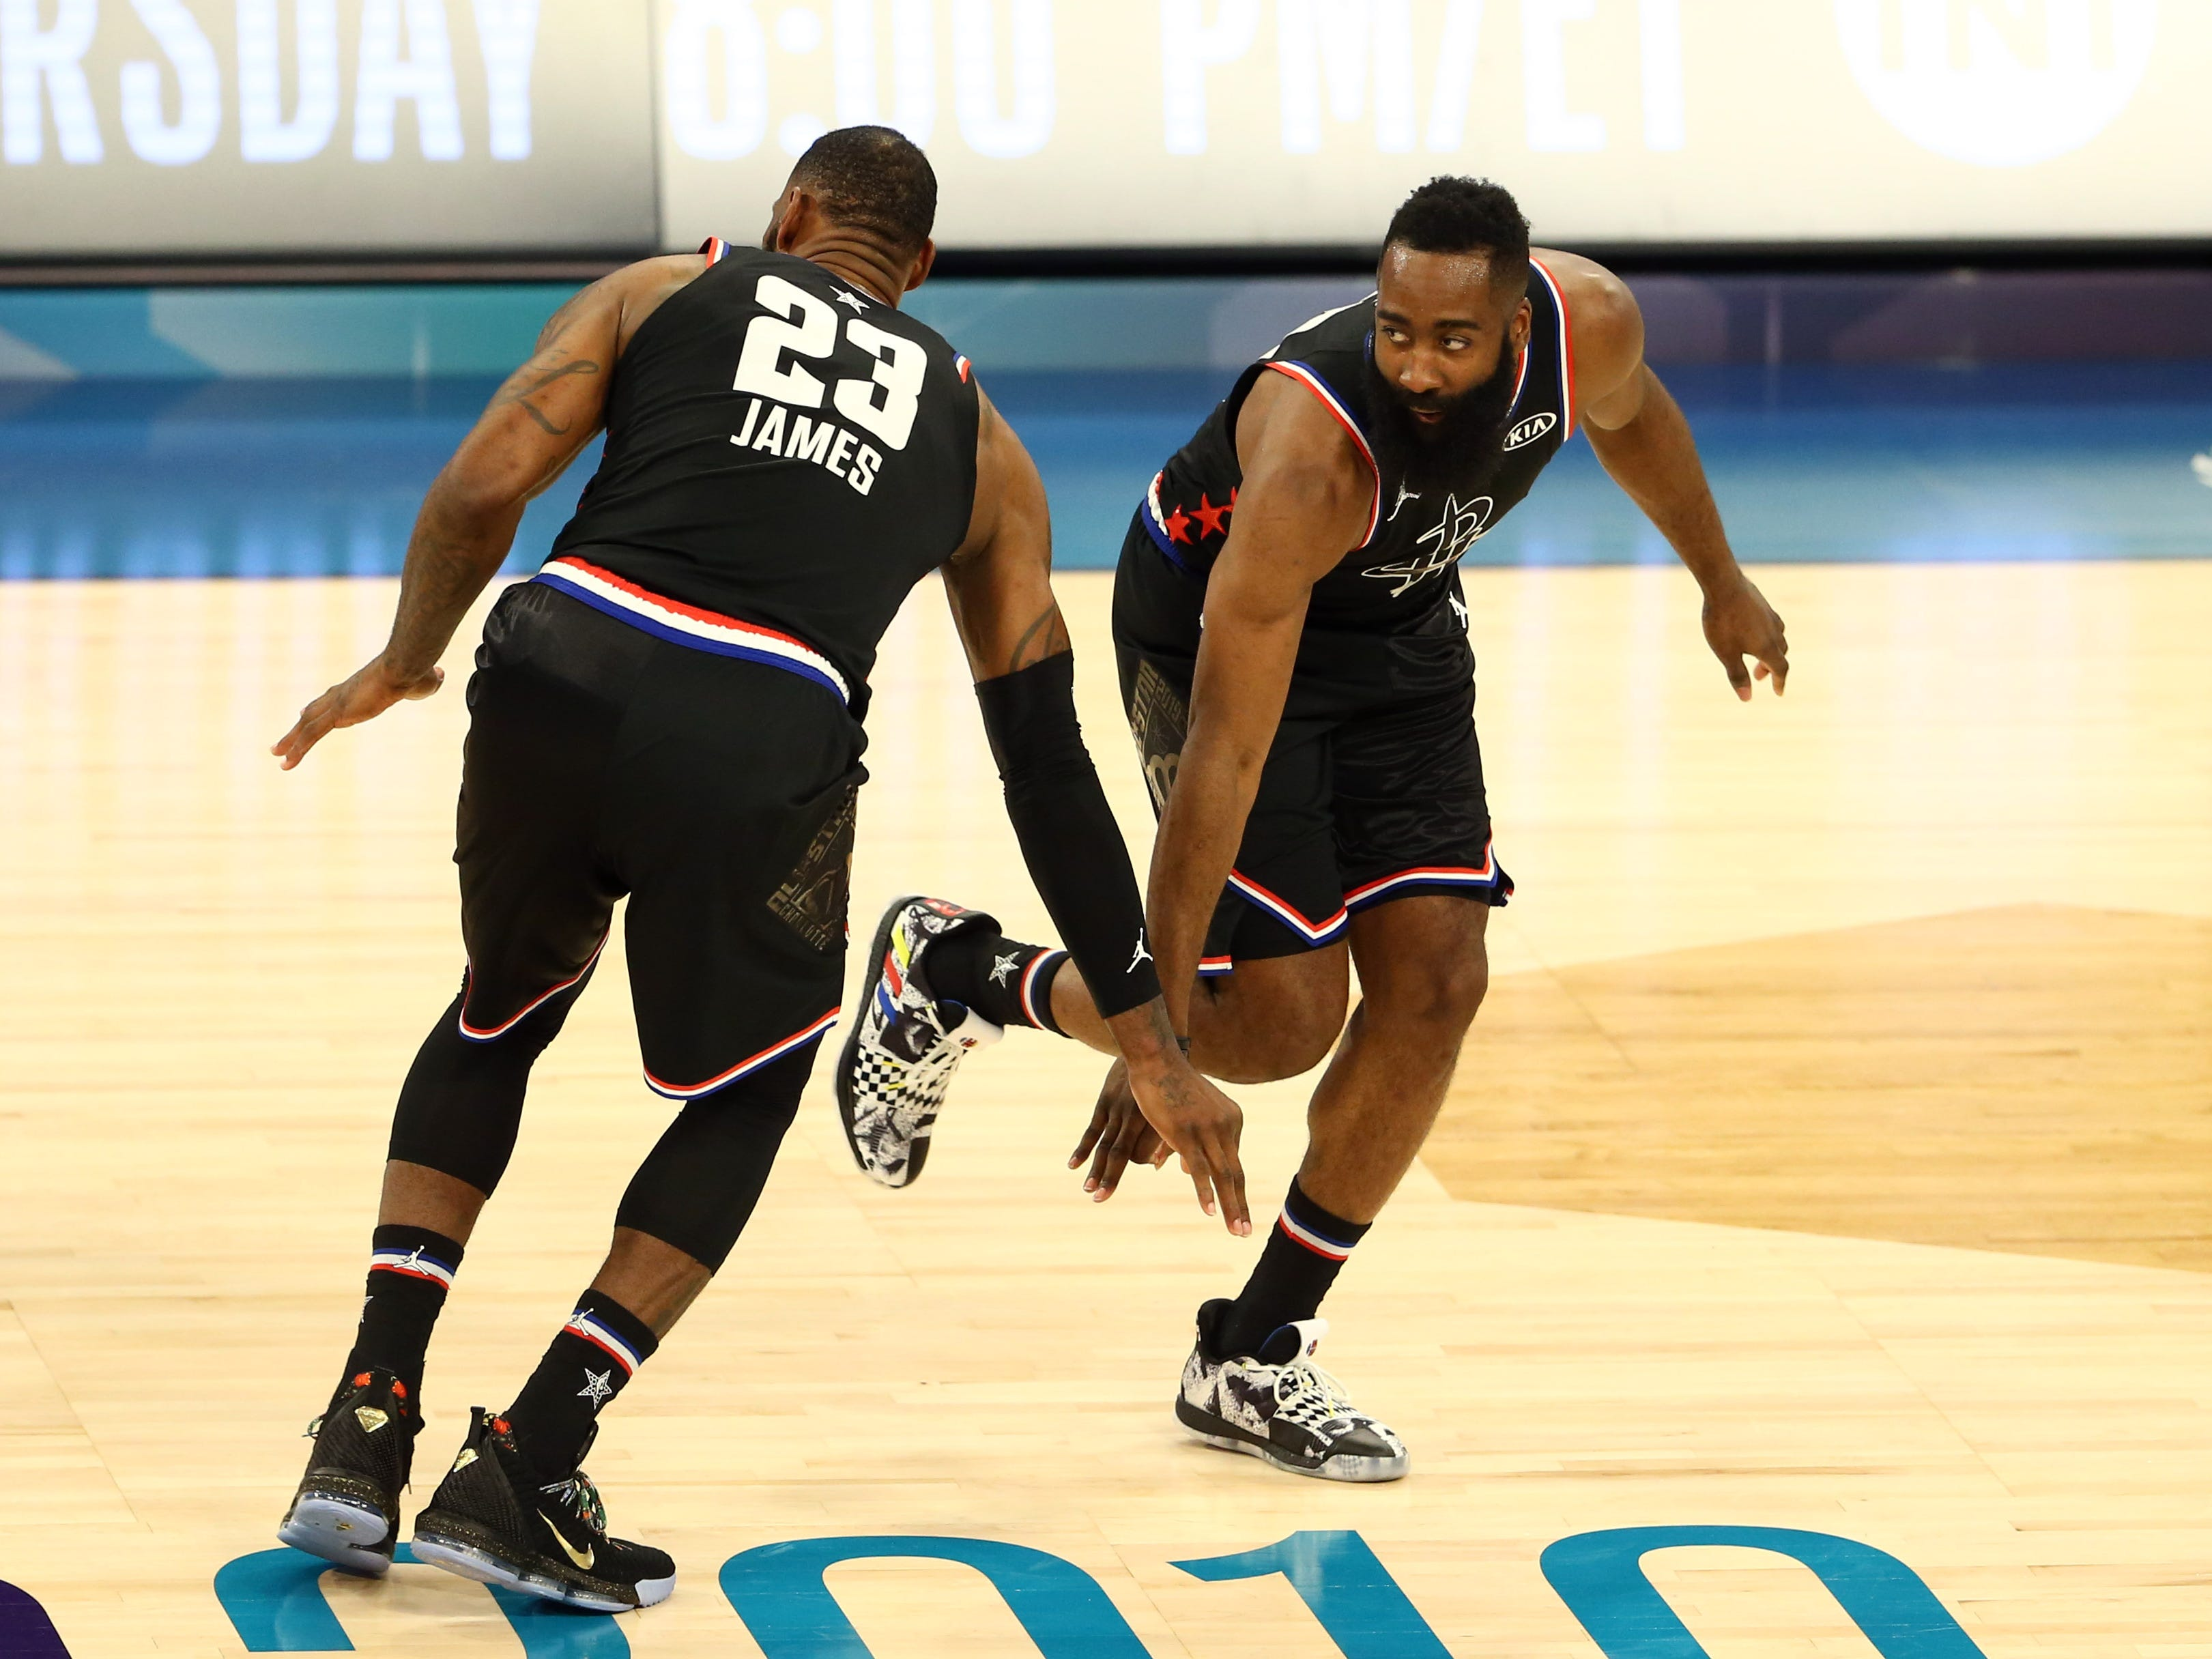 LeBron James and James Harden celebrate during the All-Star Game.